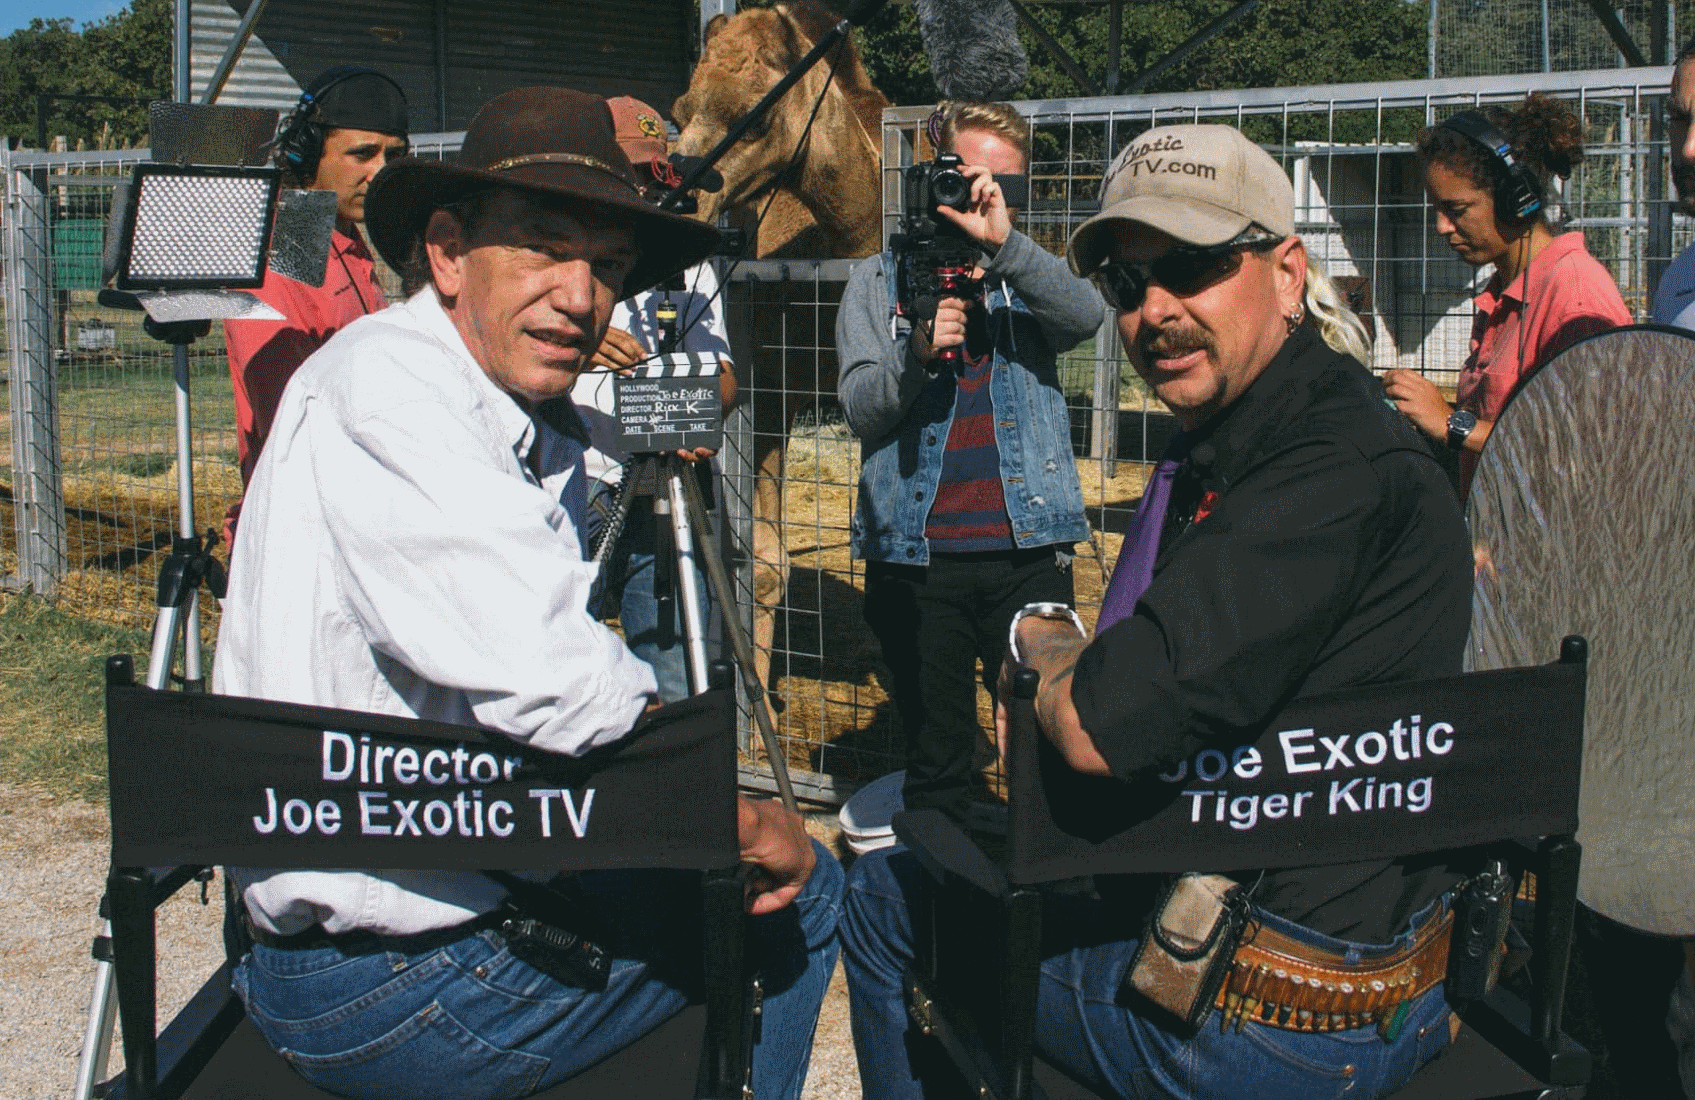 Rick Kirkham and Joe Exotic in The Truth Behind Joe Exotic: The Rick Kirkham Story. (Investigation Discovery)